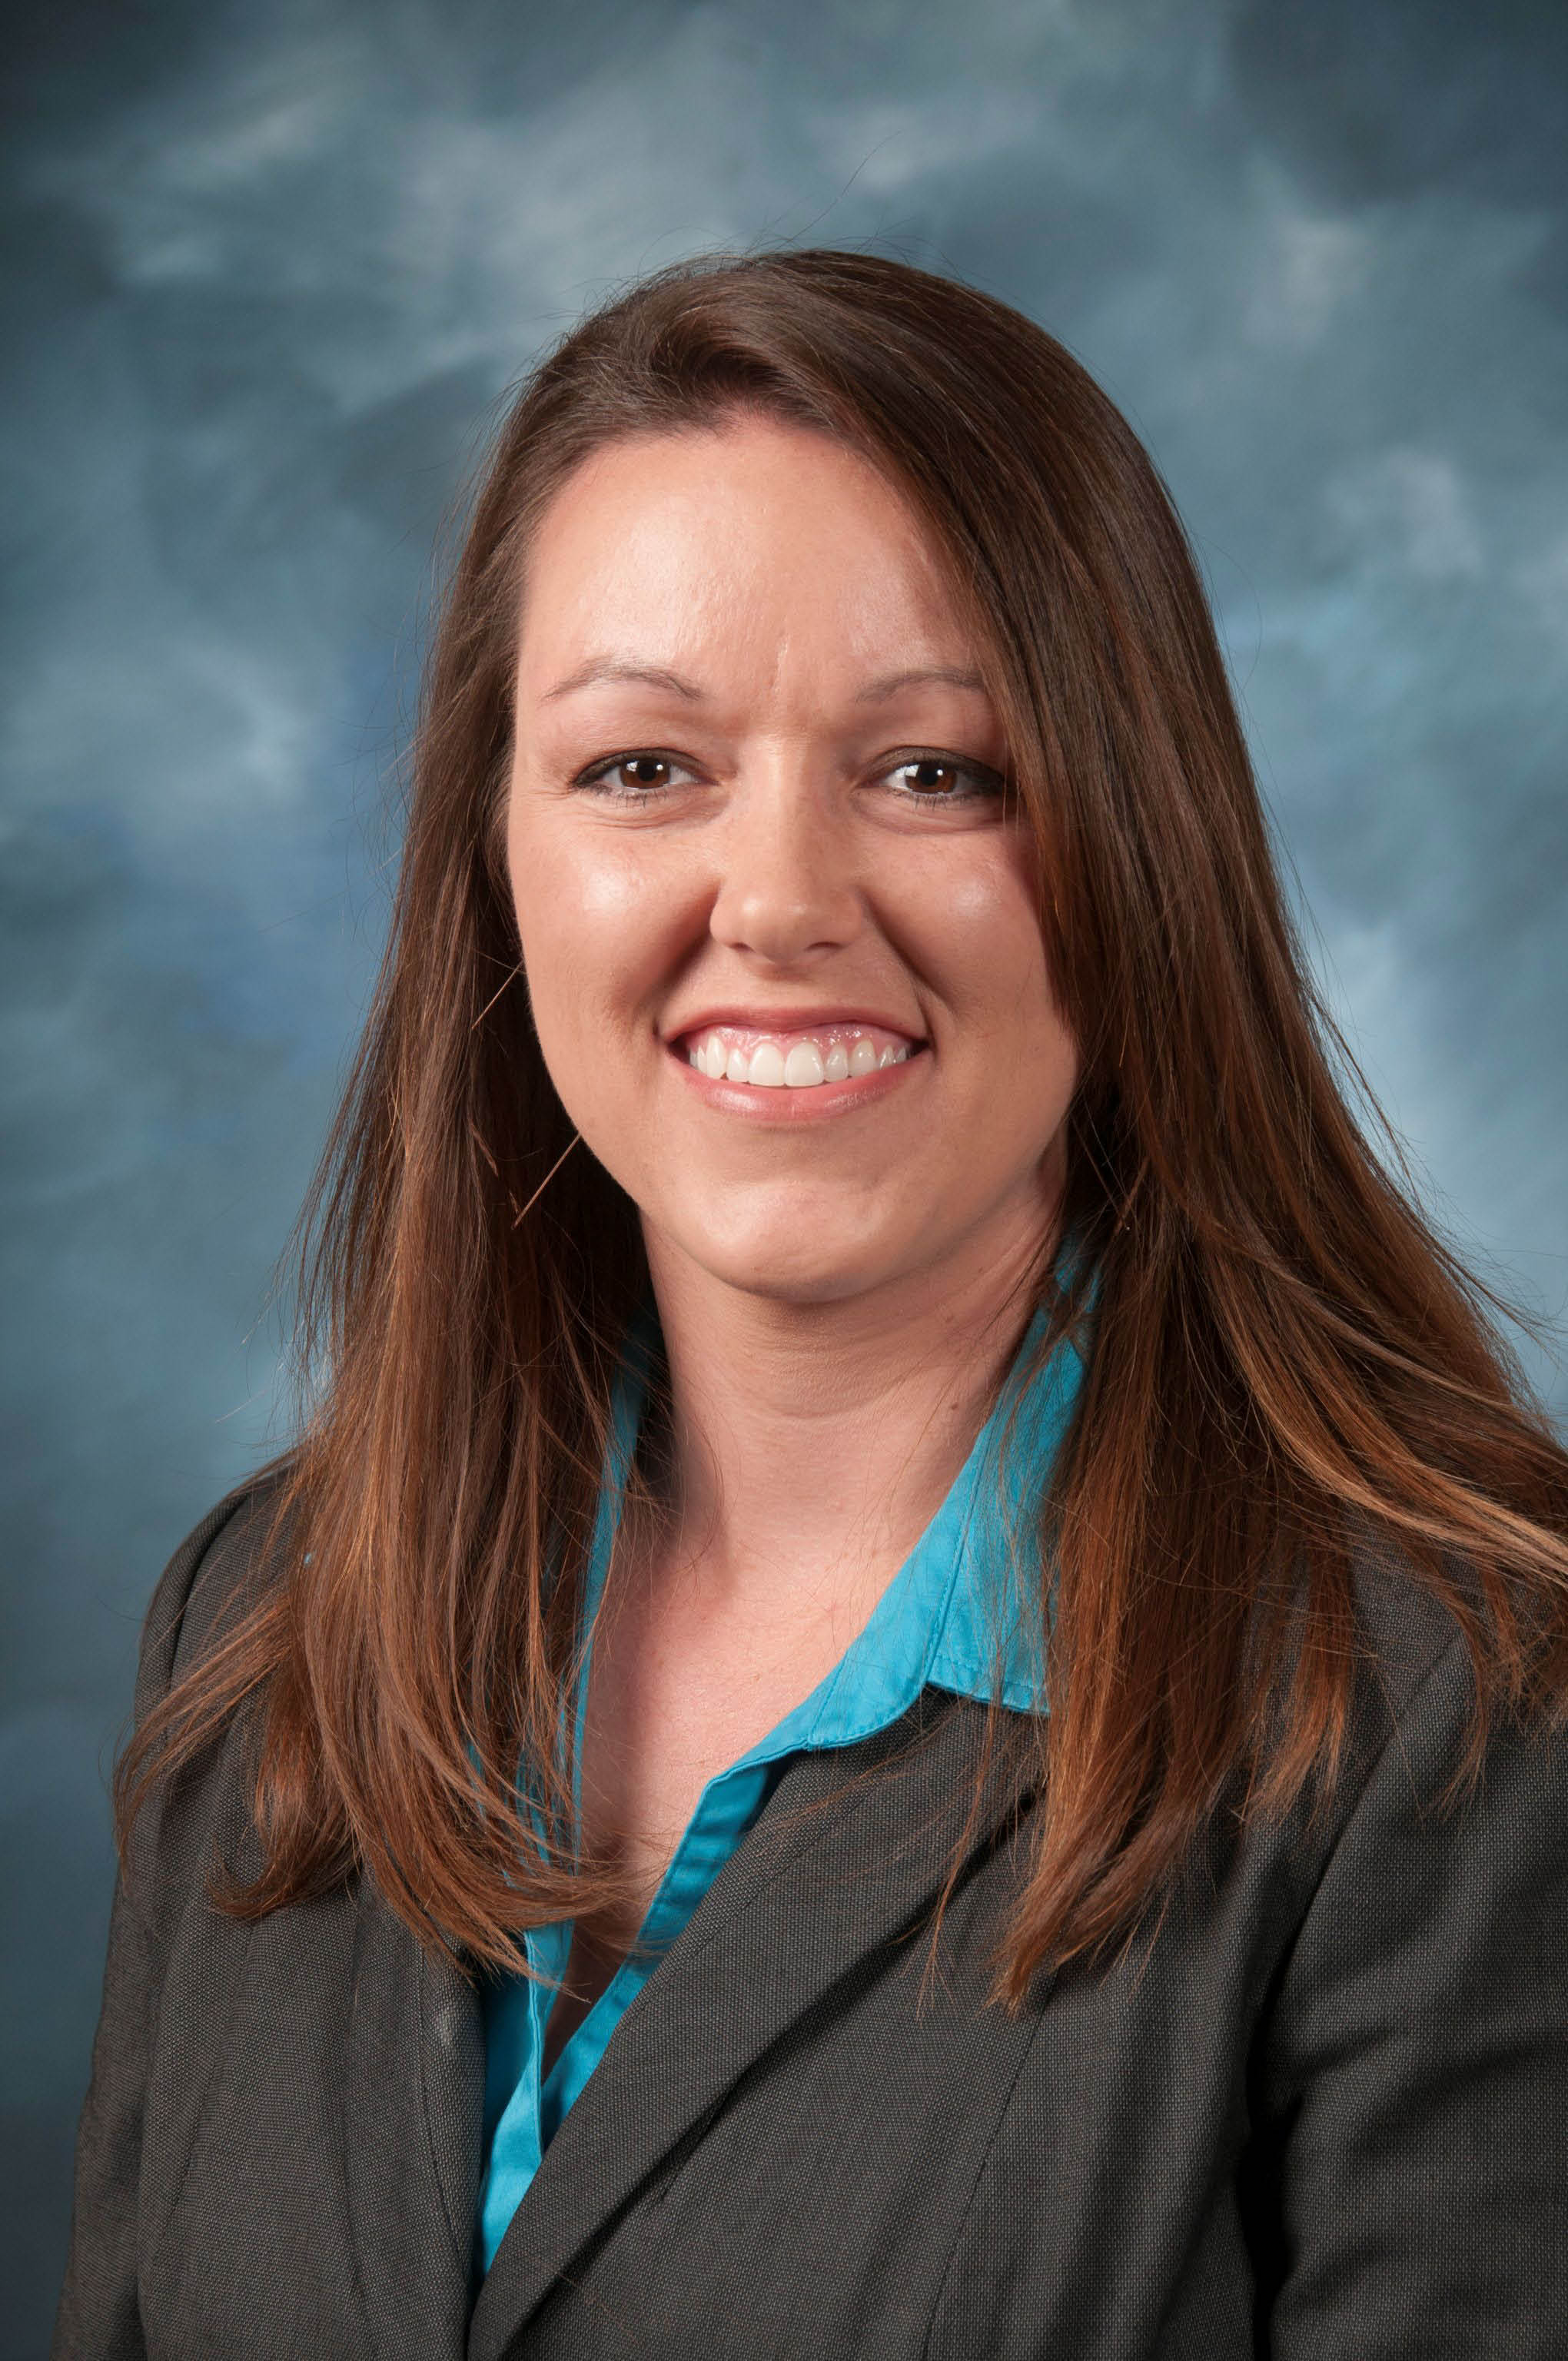 New Dr. joining practice in Shawnee KS